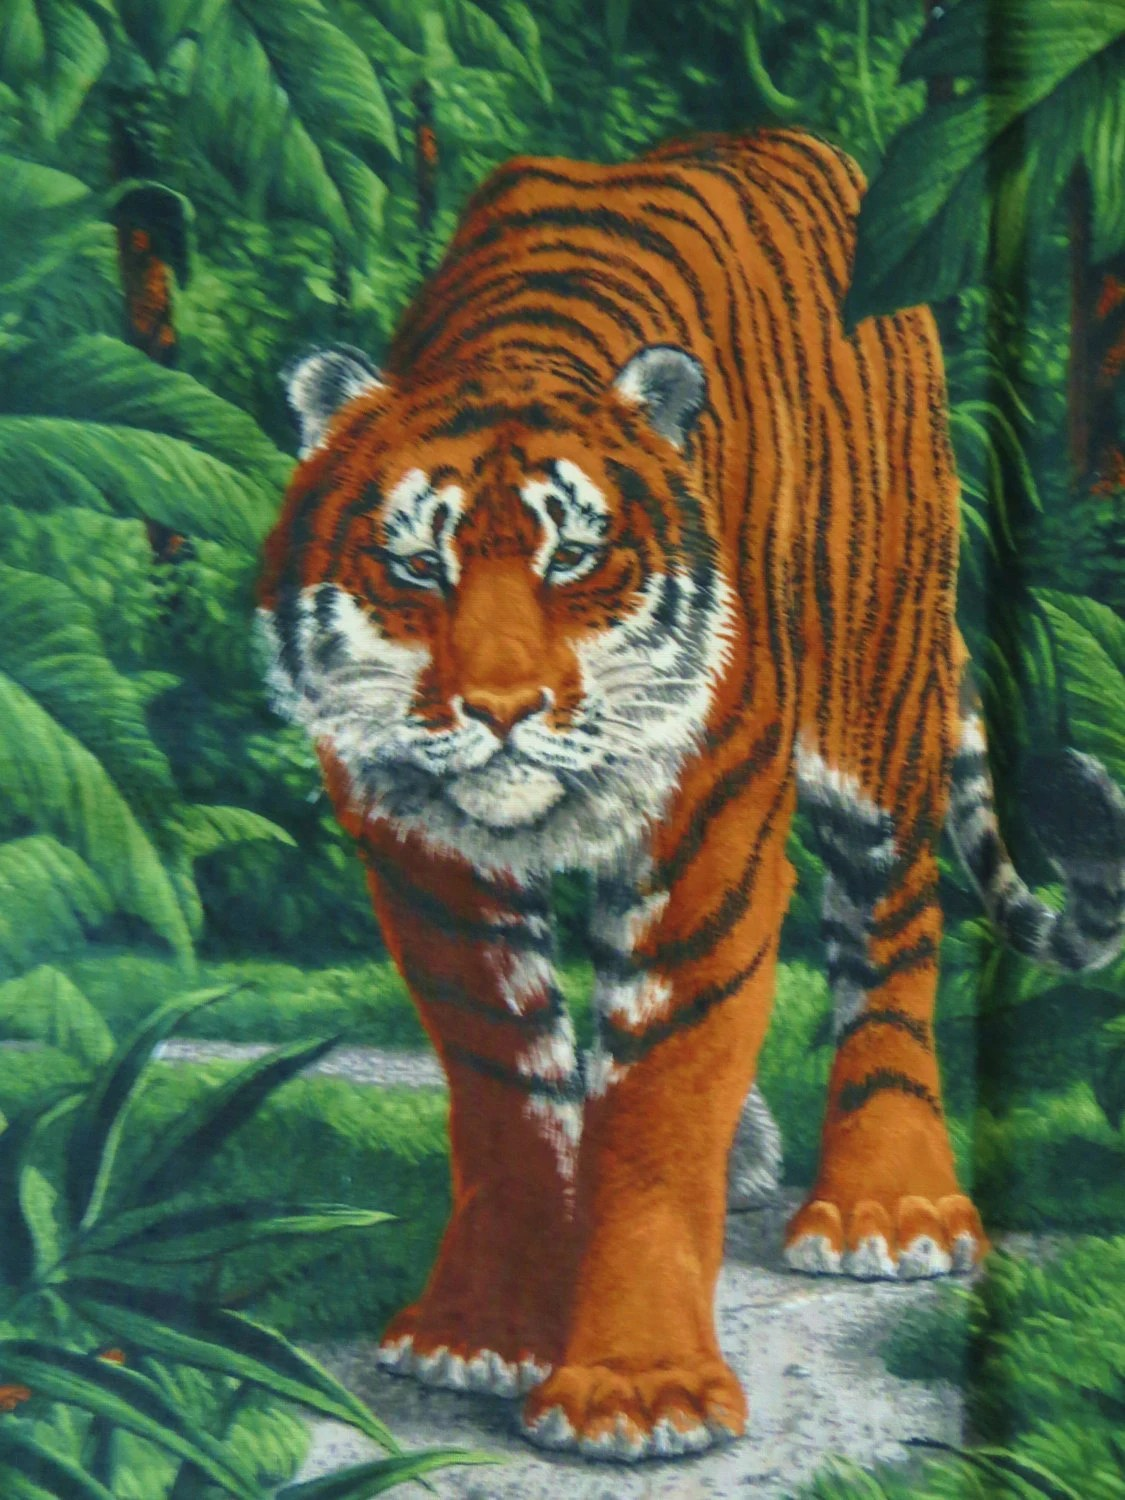 Tiger Fabric Panel for Sewing Pillows a Throw Wallhanging